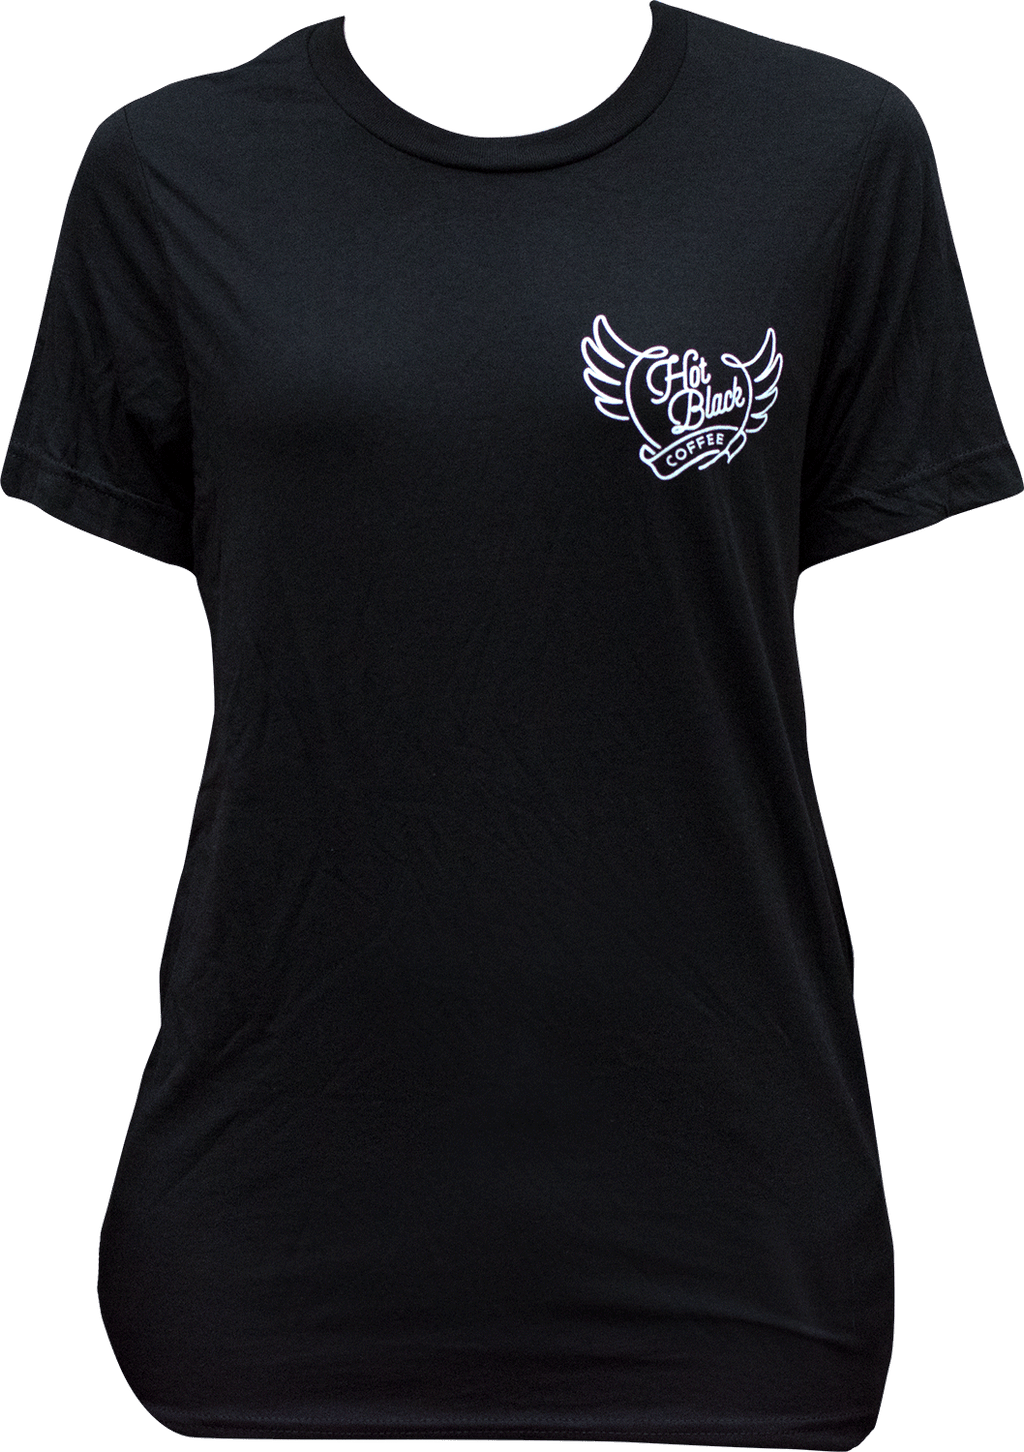 T-Shirt - Branded, all black, unisex